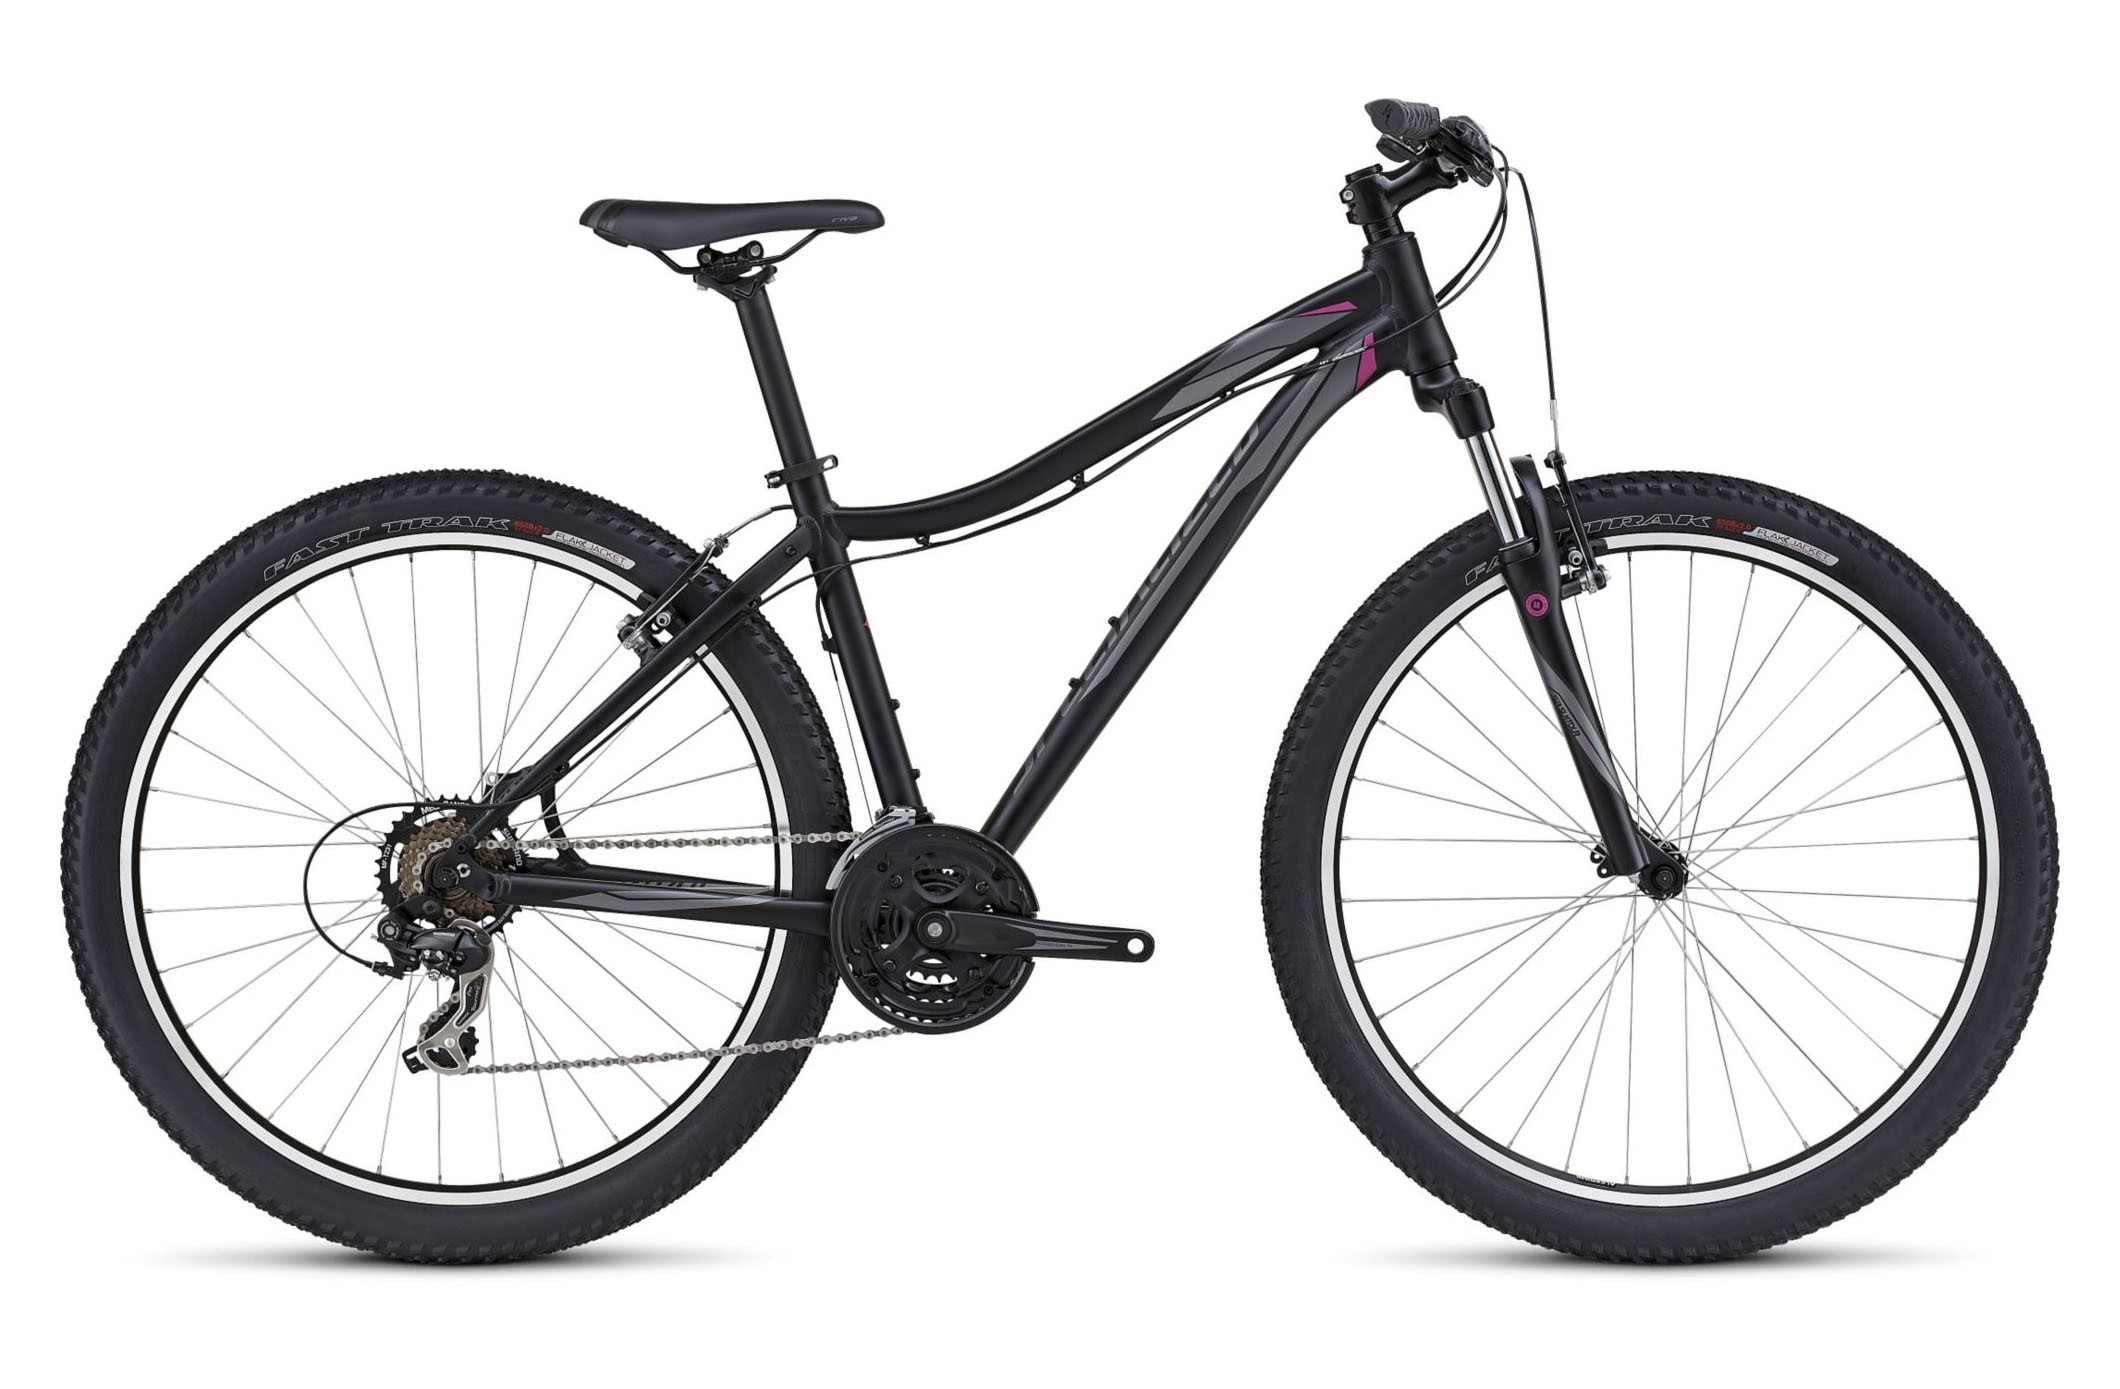 Горный велосипед Specialized Myka V 650b (2016)